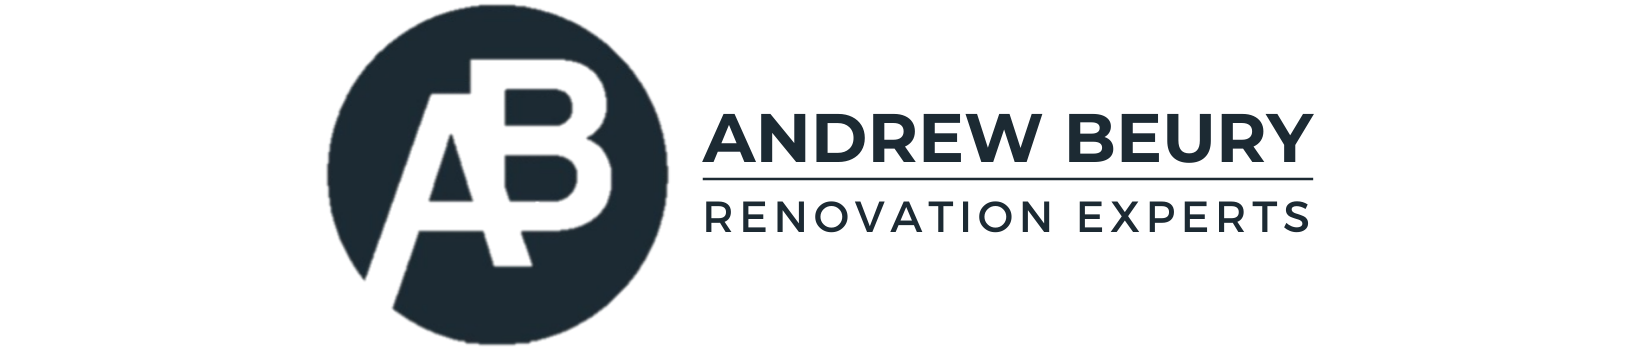 Andrew Beury Renovation Experts